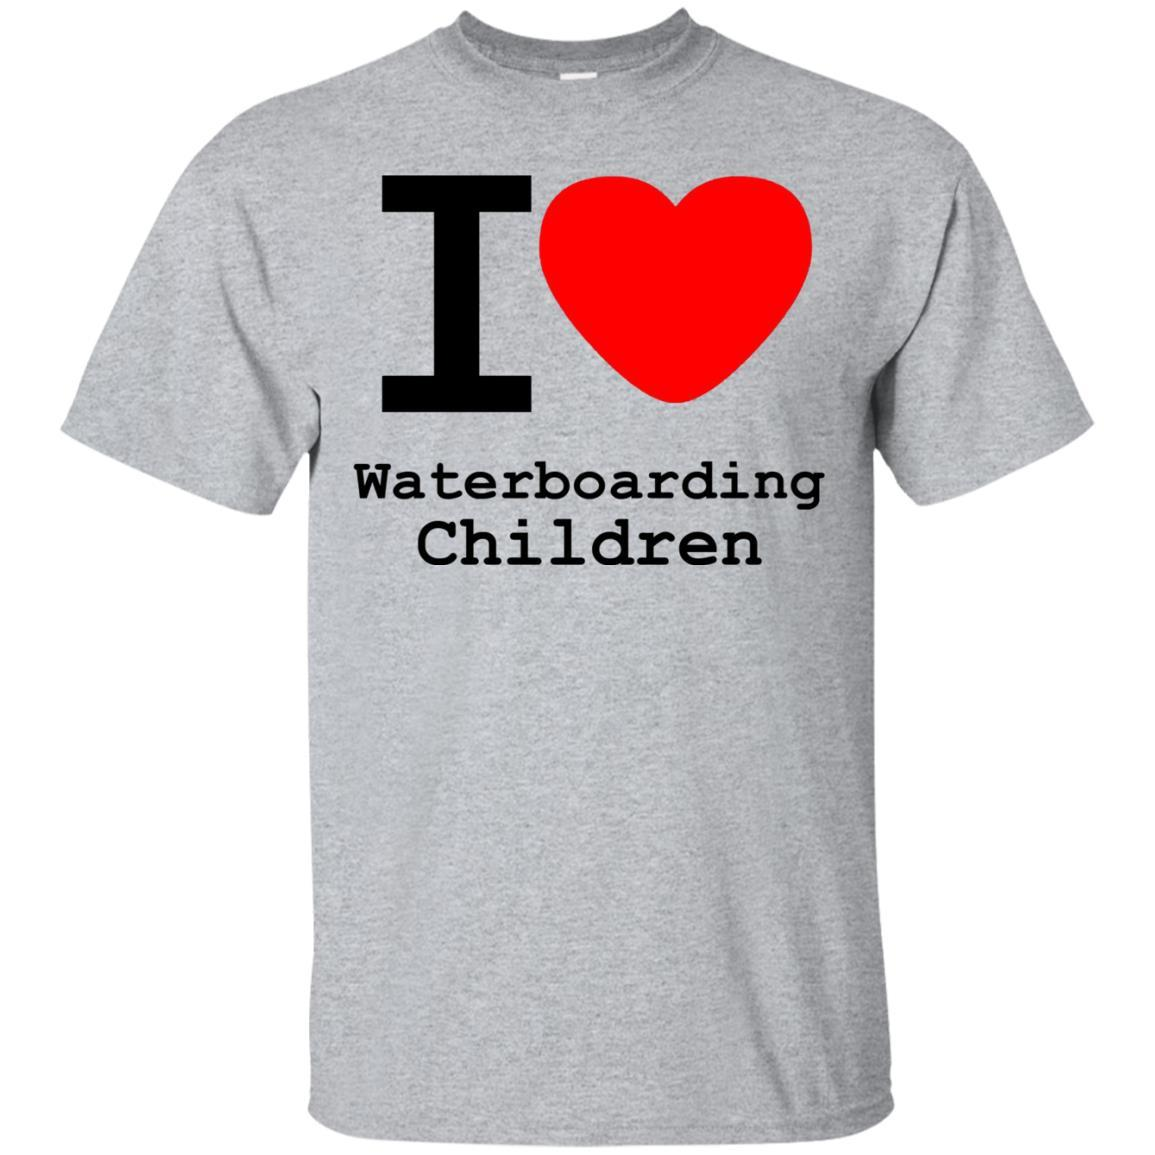 I love Waterboarding Children T-Shirt Sport Grey / 5XL